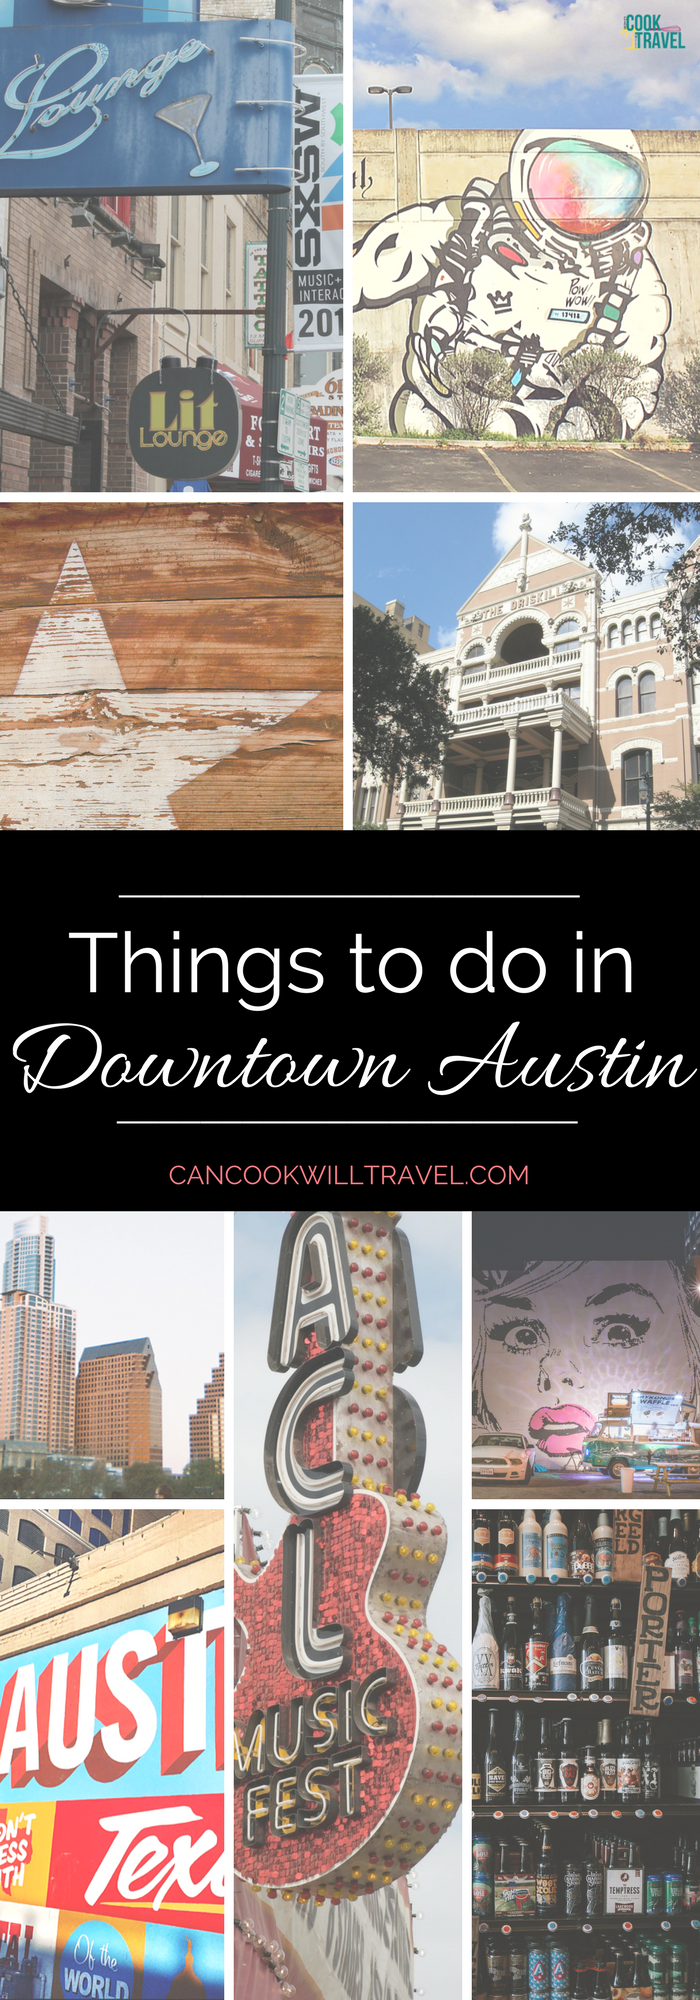 Things to do in Downtown Austin_Tall